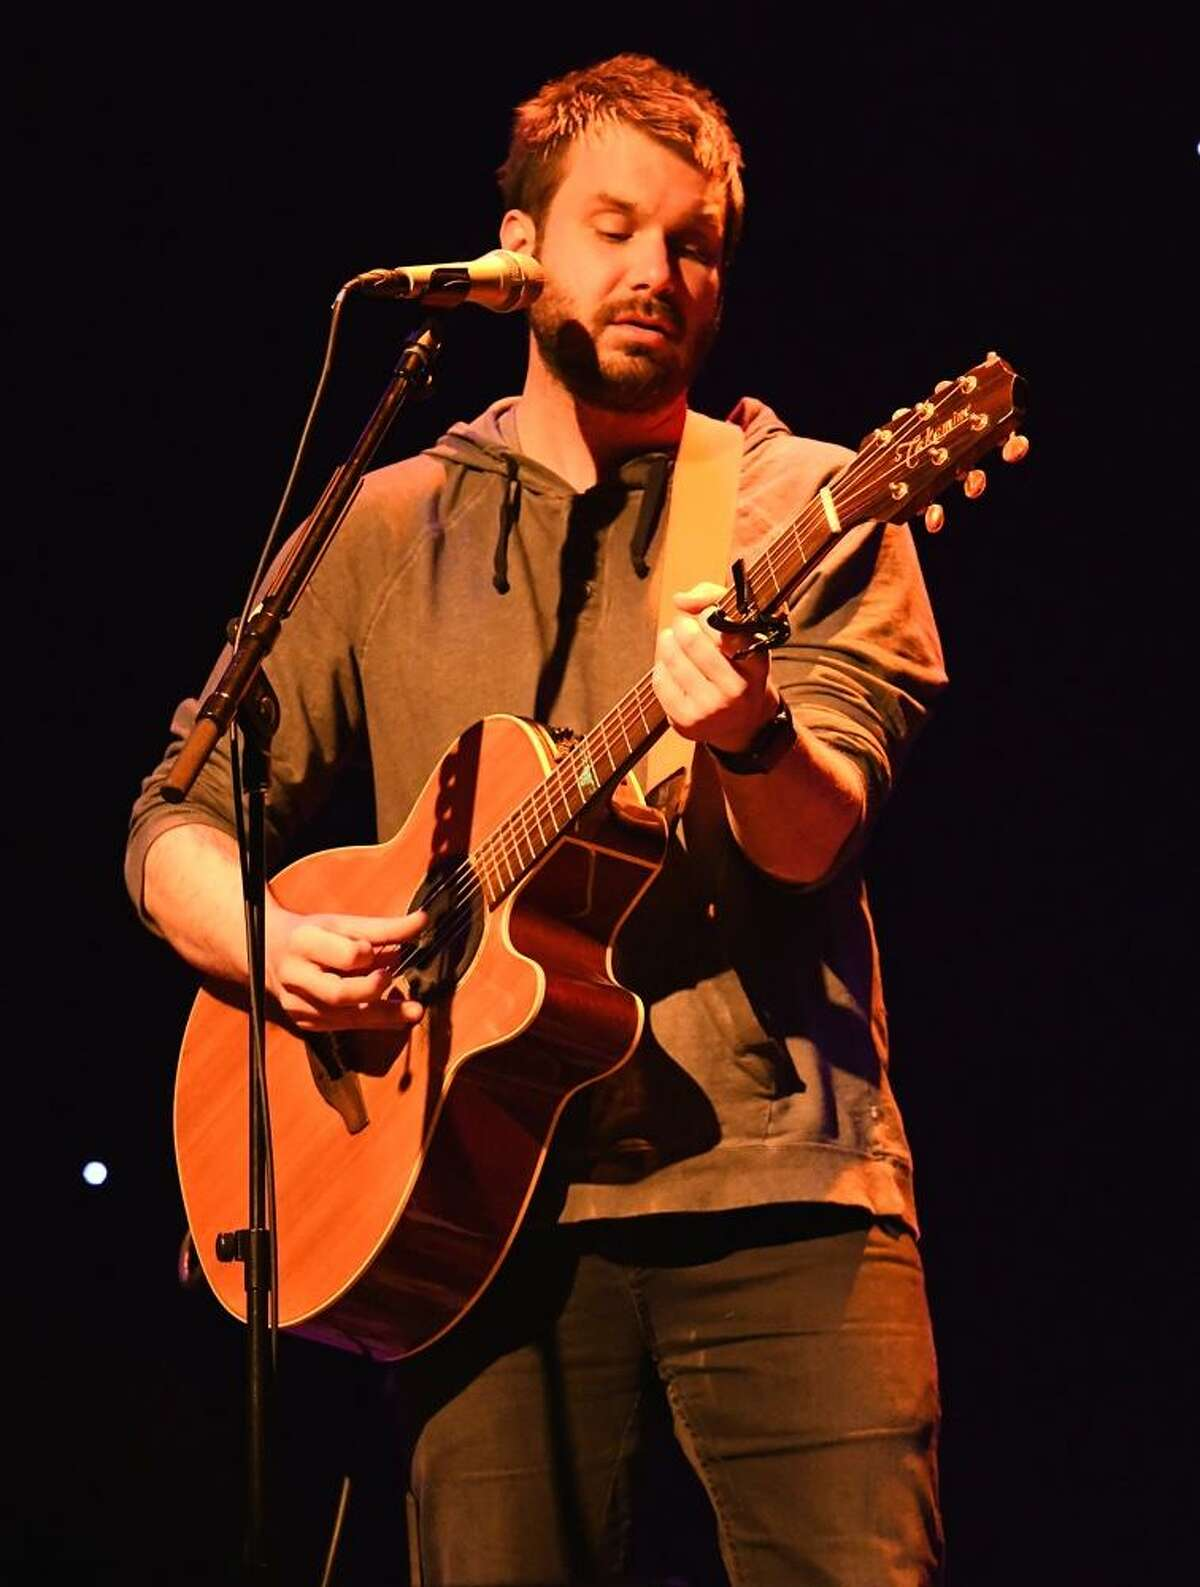 """Singer, songwriter and guitarist, Howie Day is shown on stage during his ?""""live?"""" solo performance at the Infinity Music Hall in Hartford on Jan. 26. To learn more this musician from Bangor, ME, visit www.howieday.com"""